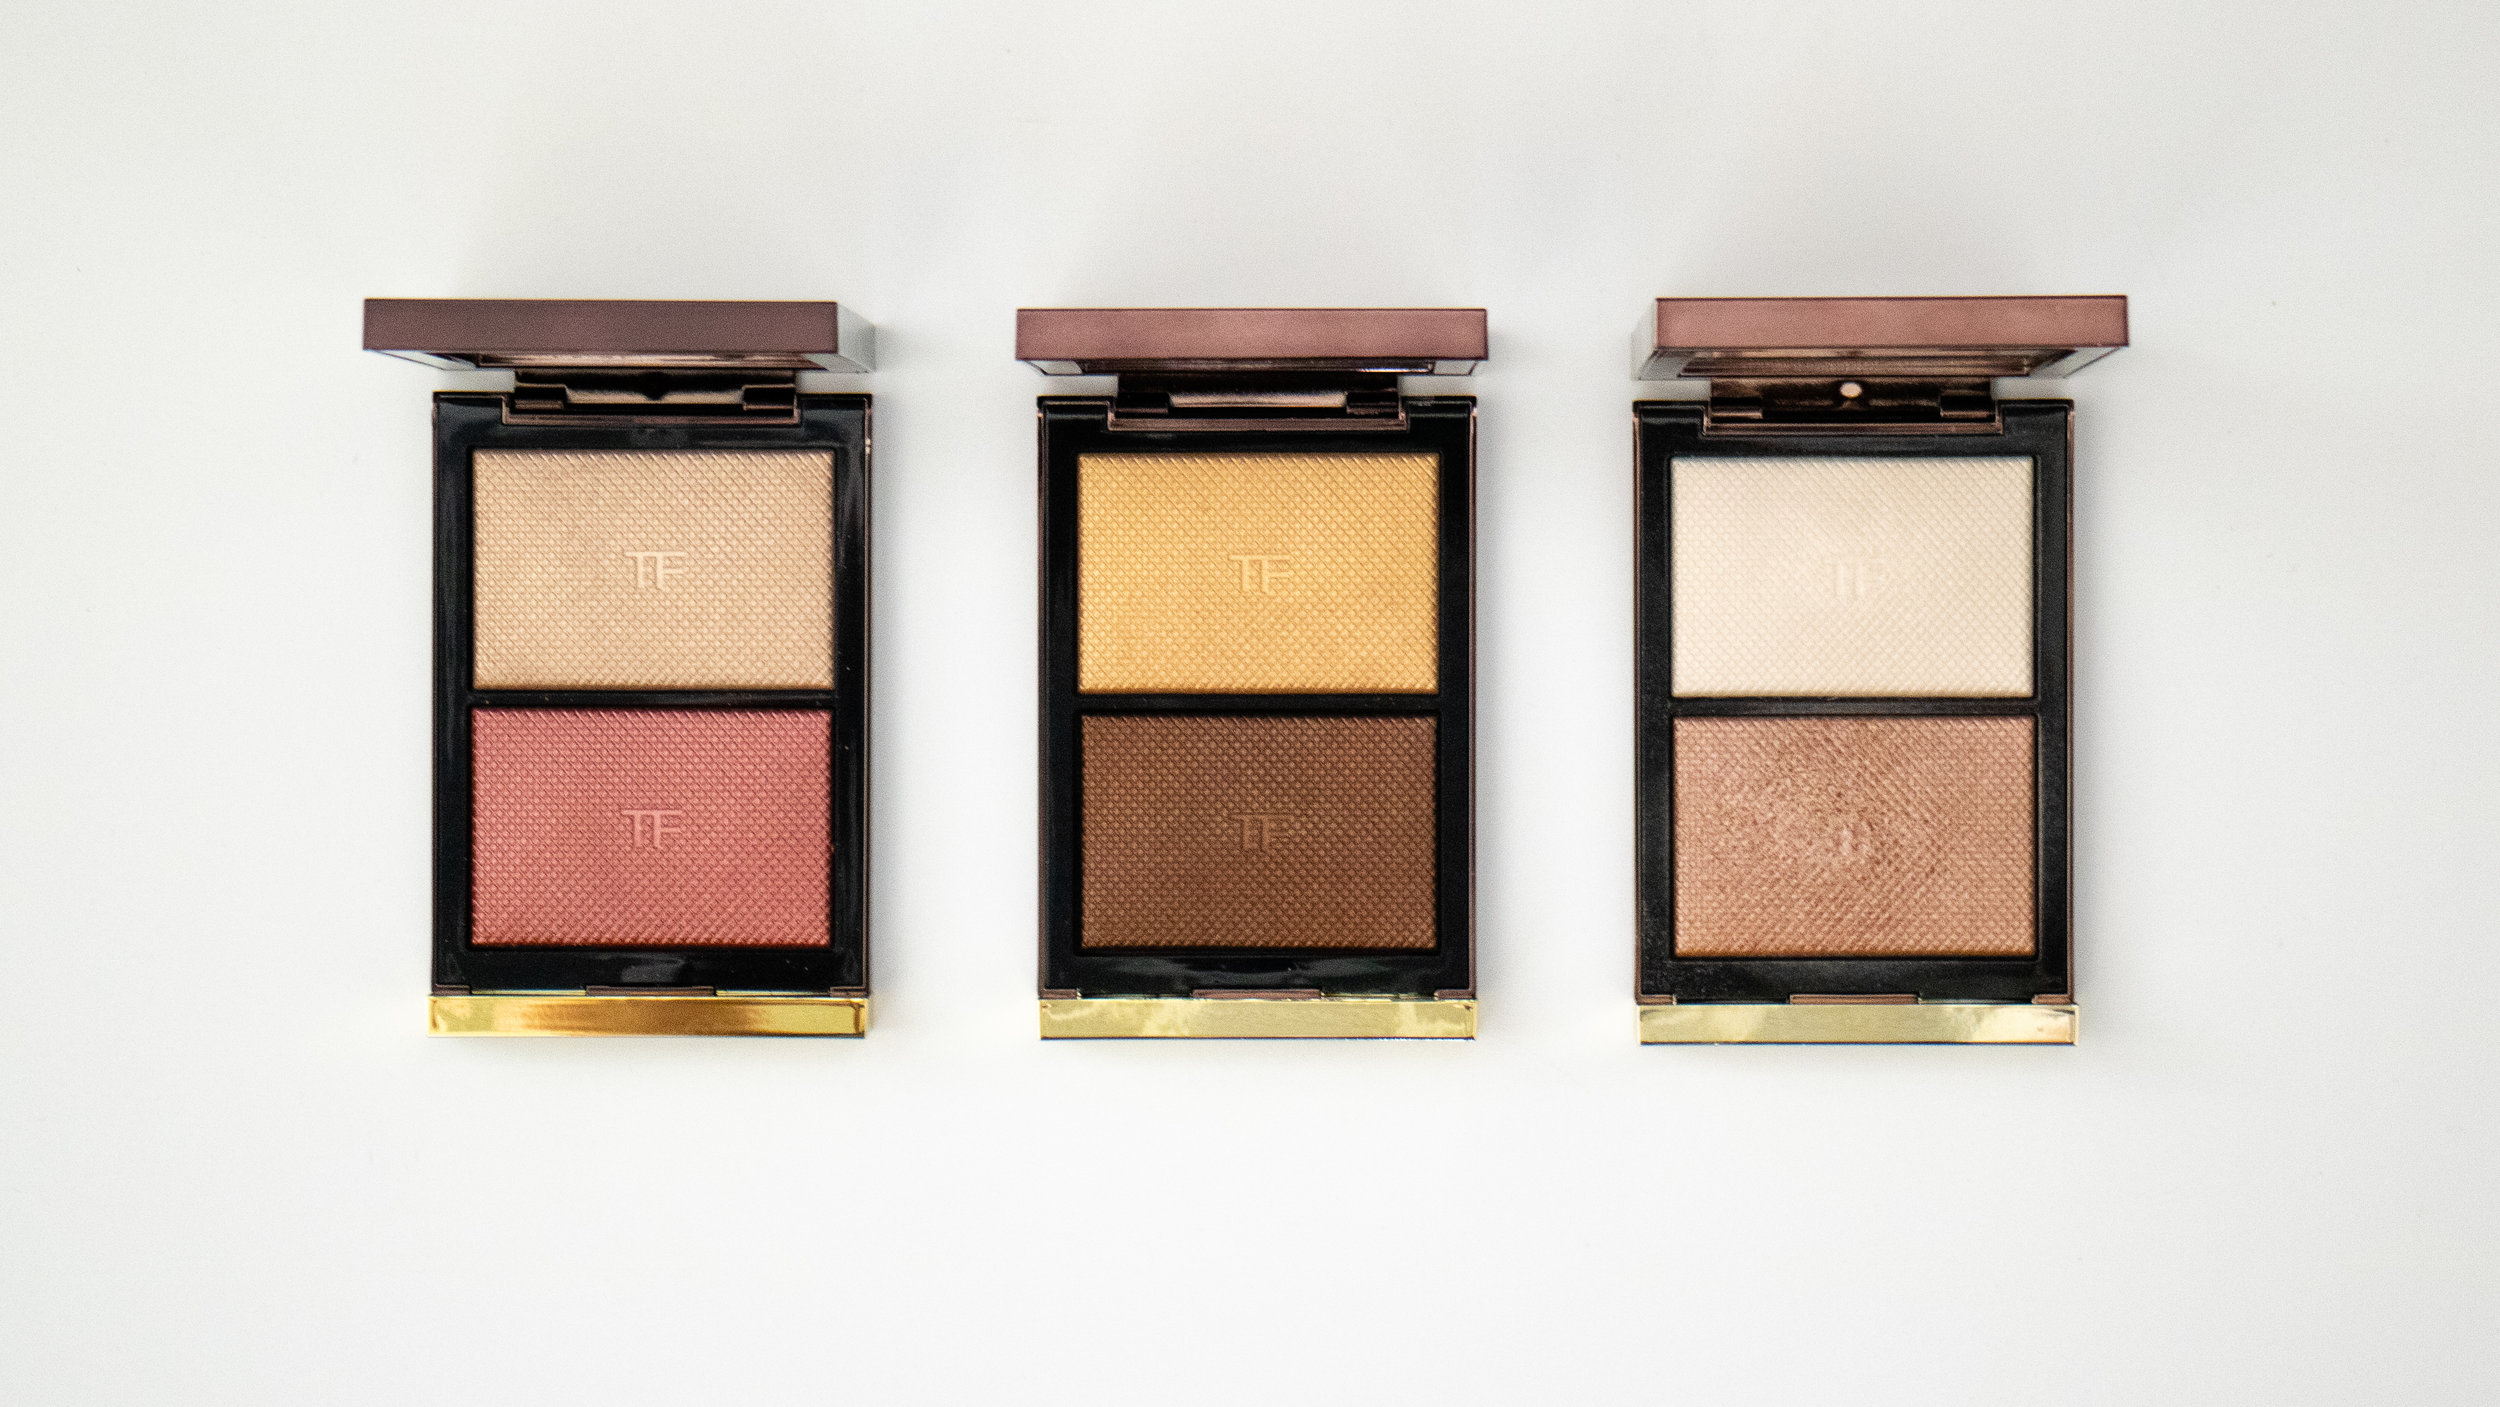 Tom Ford Skin Illuminating Powder Duos. From L to R: Incandescent, Flicker, Moodlight